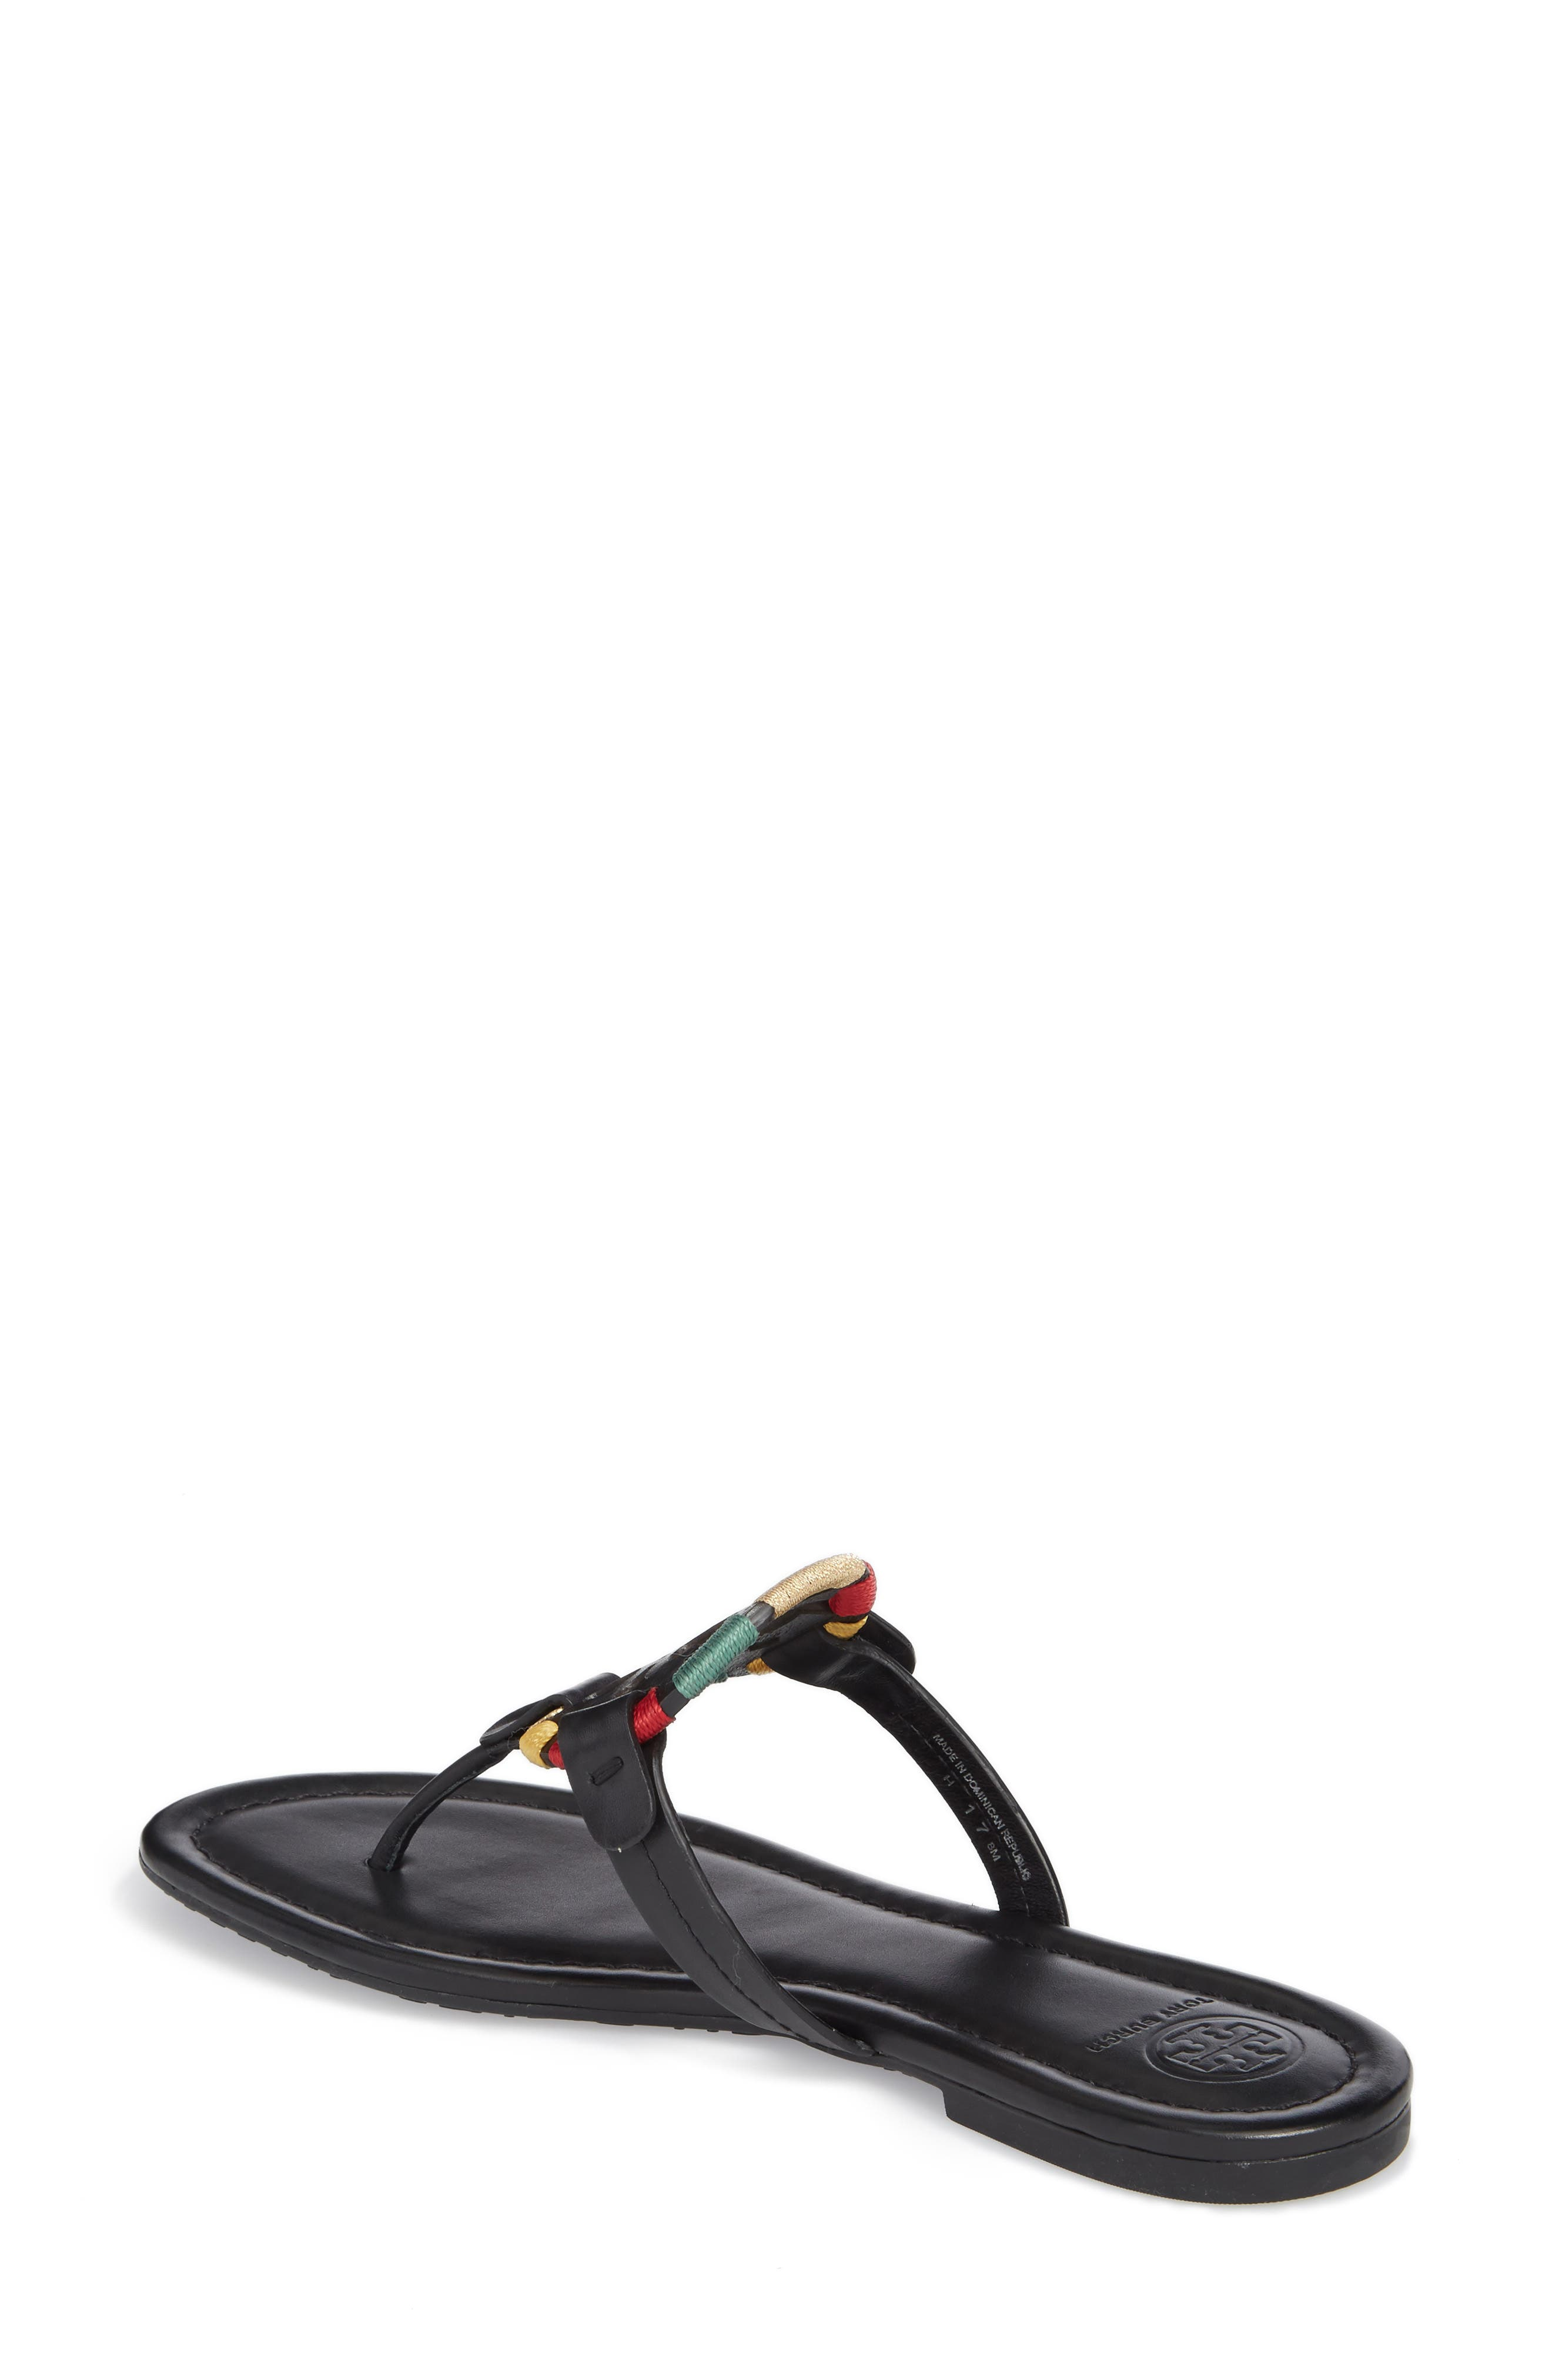 Alternate Image 2  - Tory Burch Miller Sandal (Women)